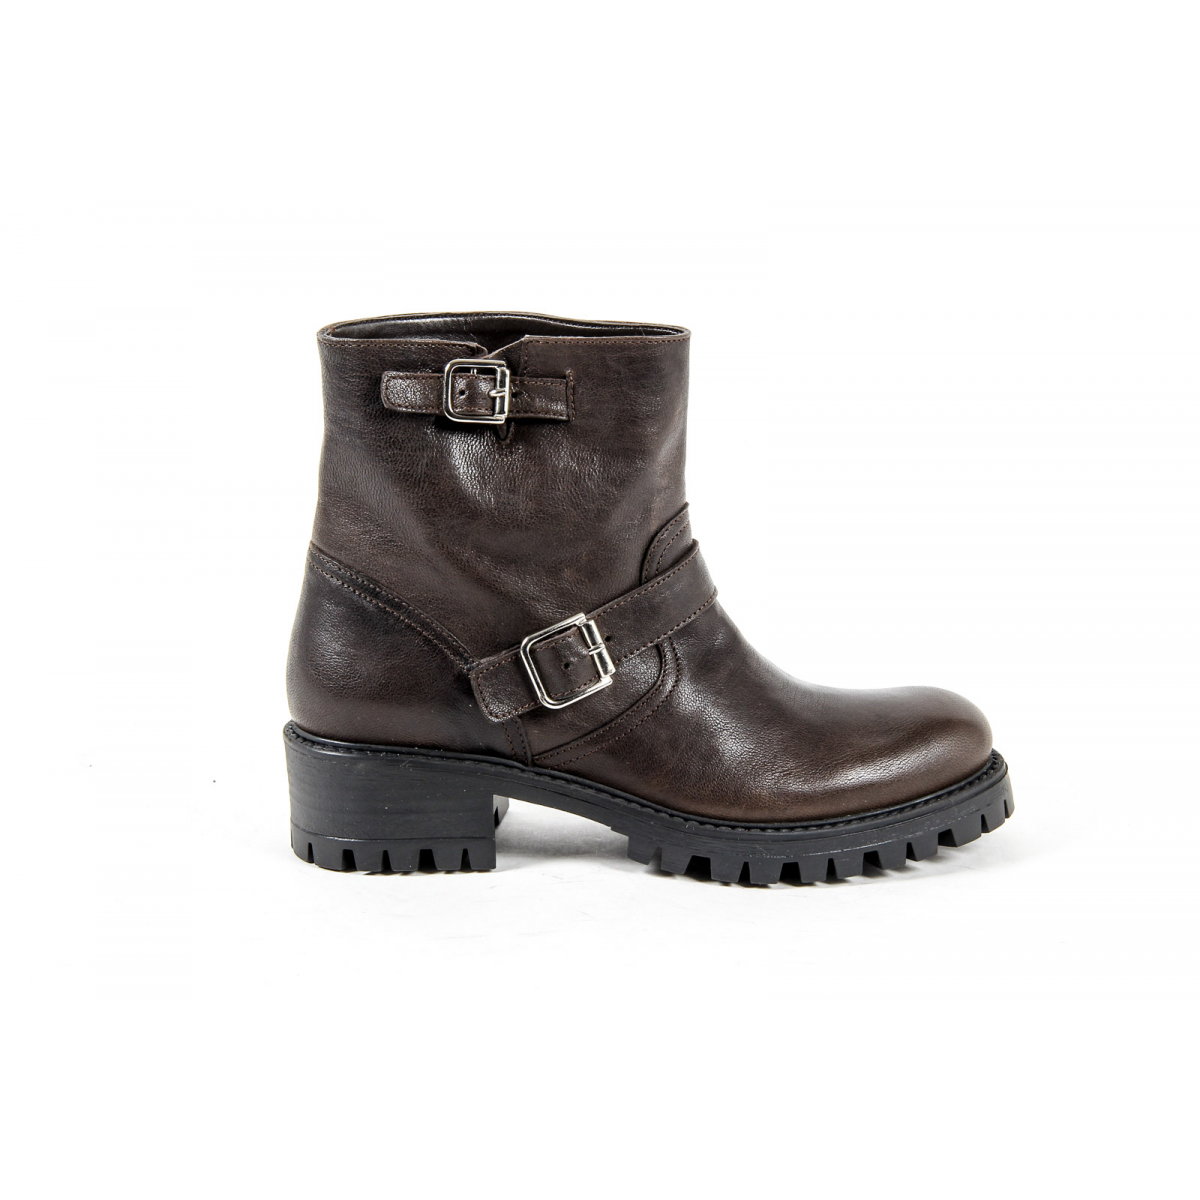 Primary image for V 1969 Italia Womens Short Boot Brown AMALFI